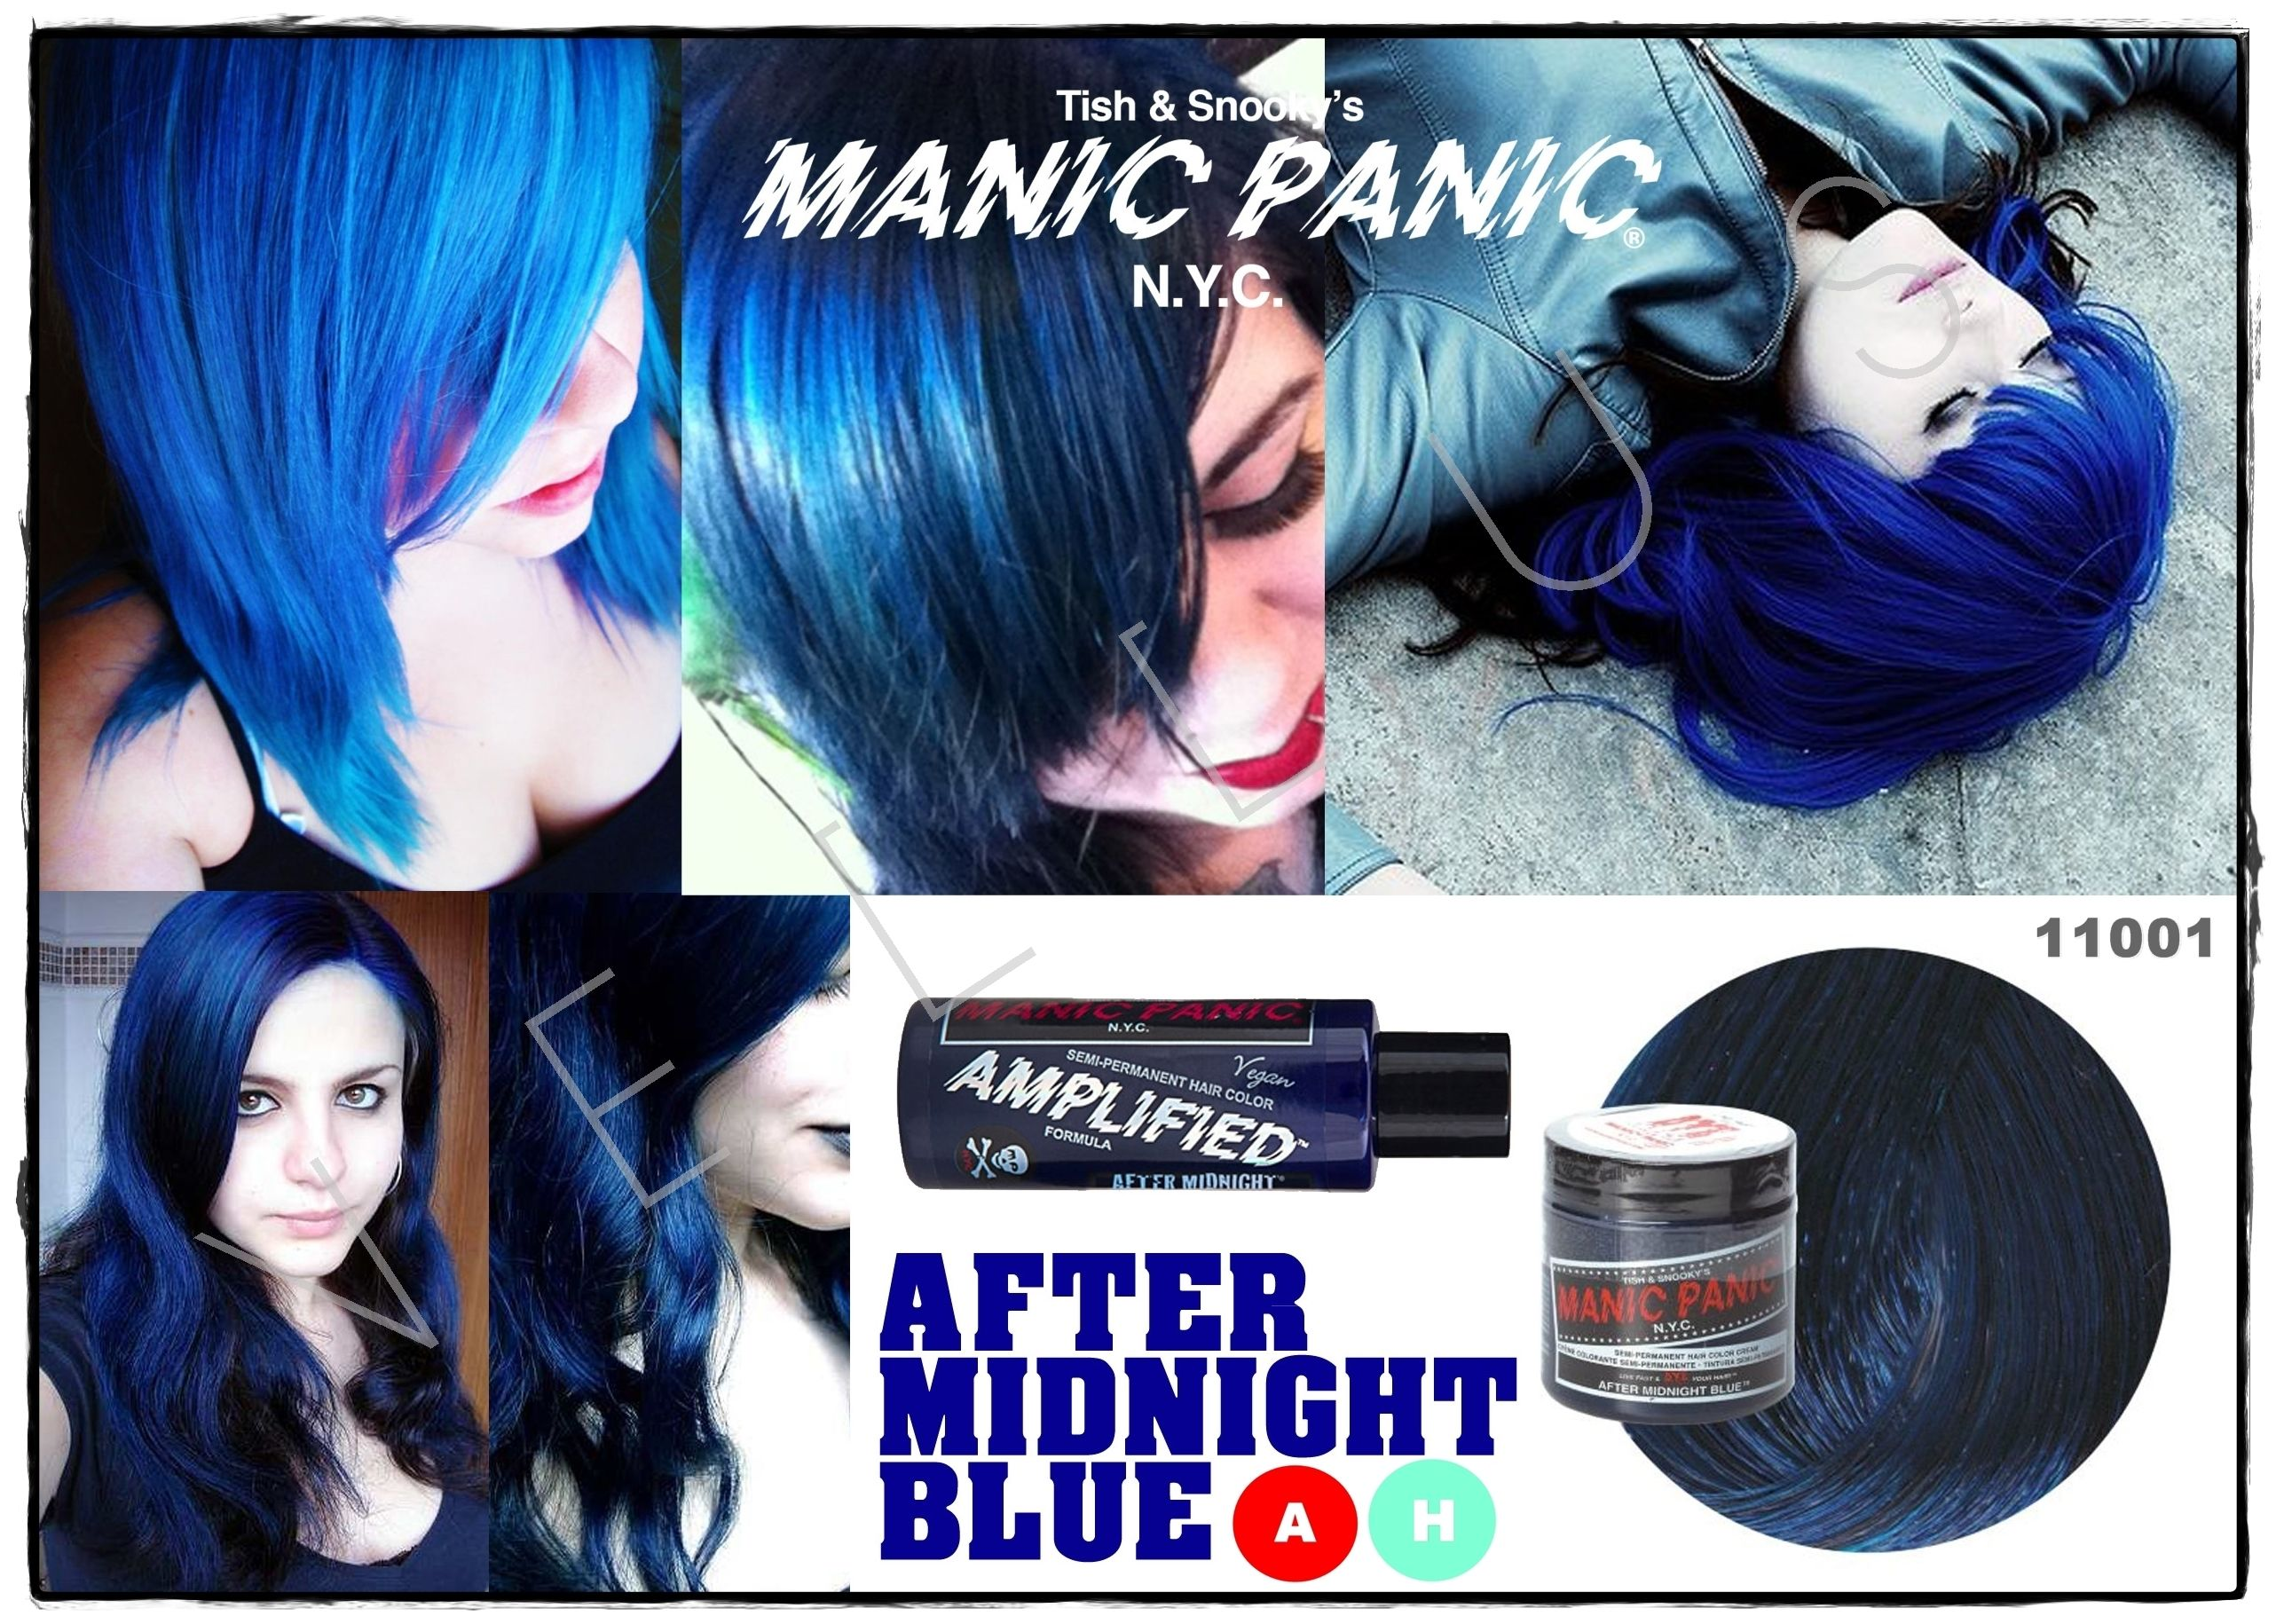 Manic Panic Amplified After Midnight Blue Vellus Hair Studio 83a Tanjong Pagar Road S 088504 Tel 62246566 Manic Panic Blue Manic Panic Manic Panic Colors